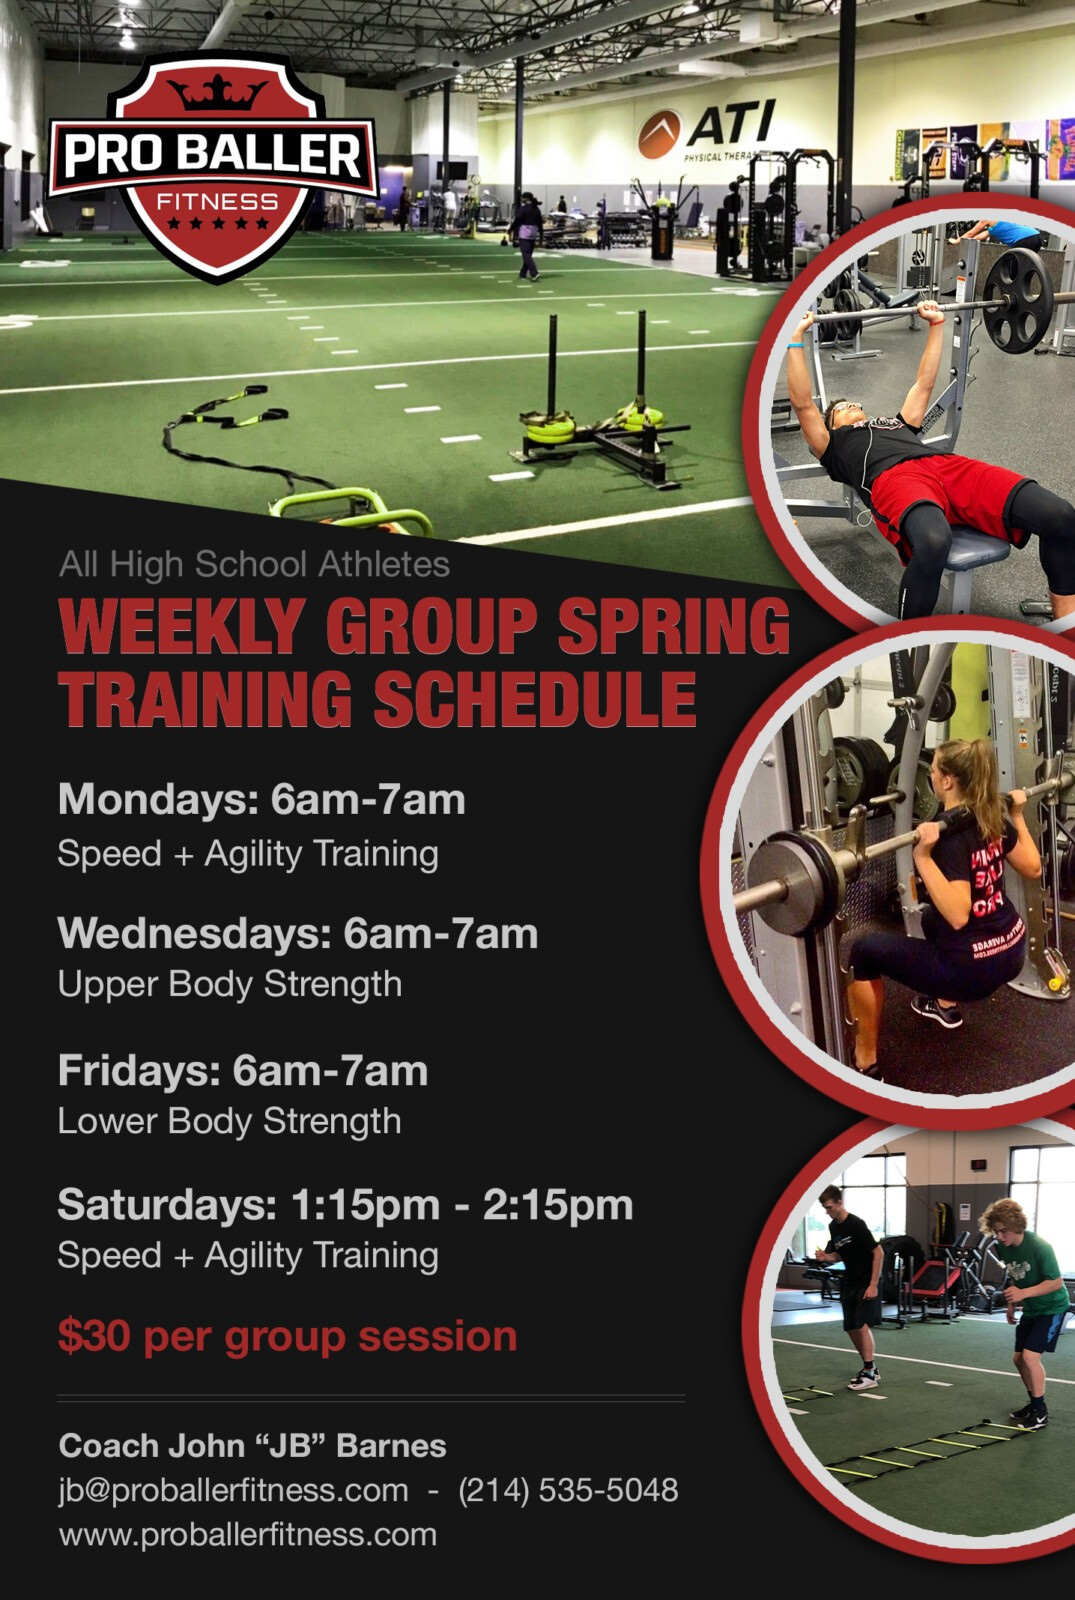 Pro Baller Fitness Weekly Group Spring Training